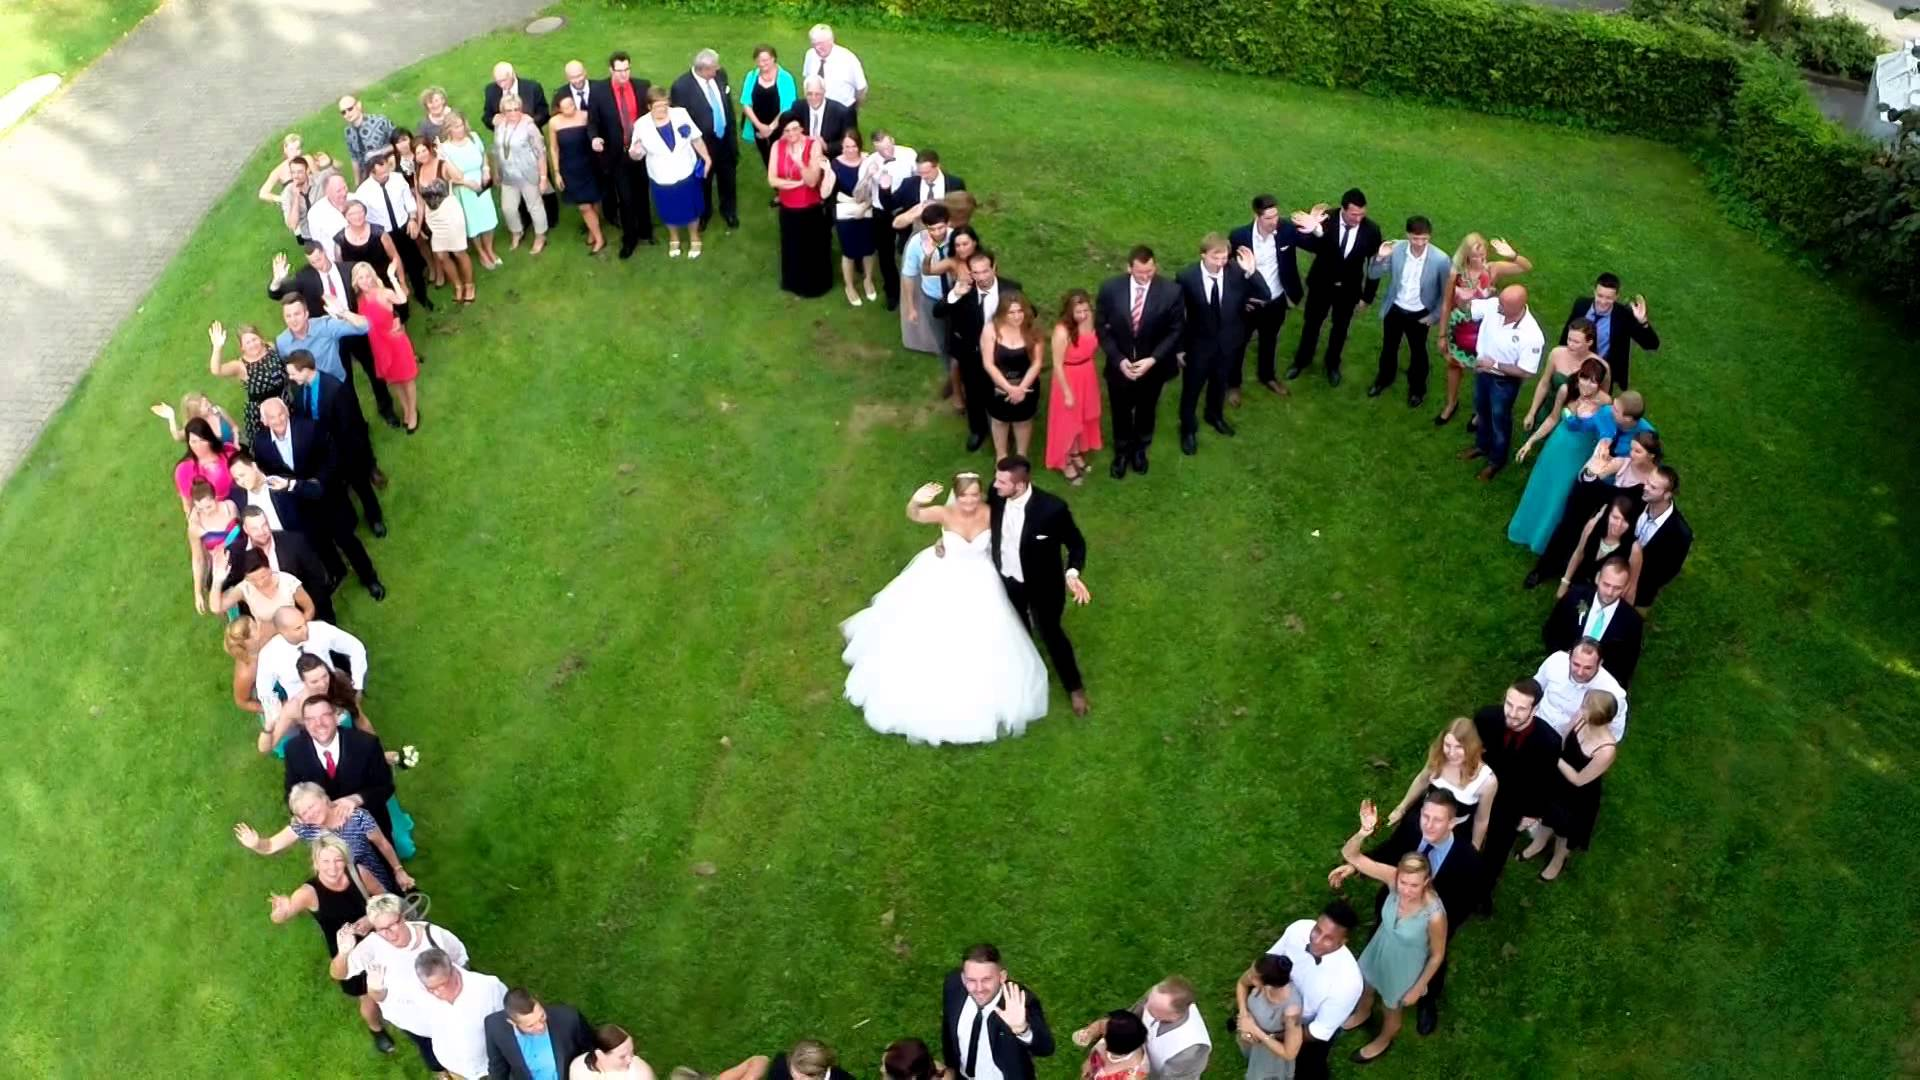 Benefits Of Using Drones For Weddings